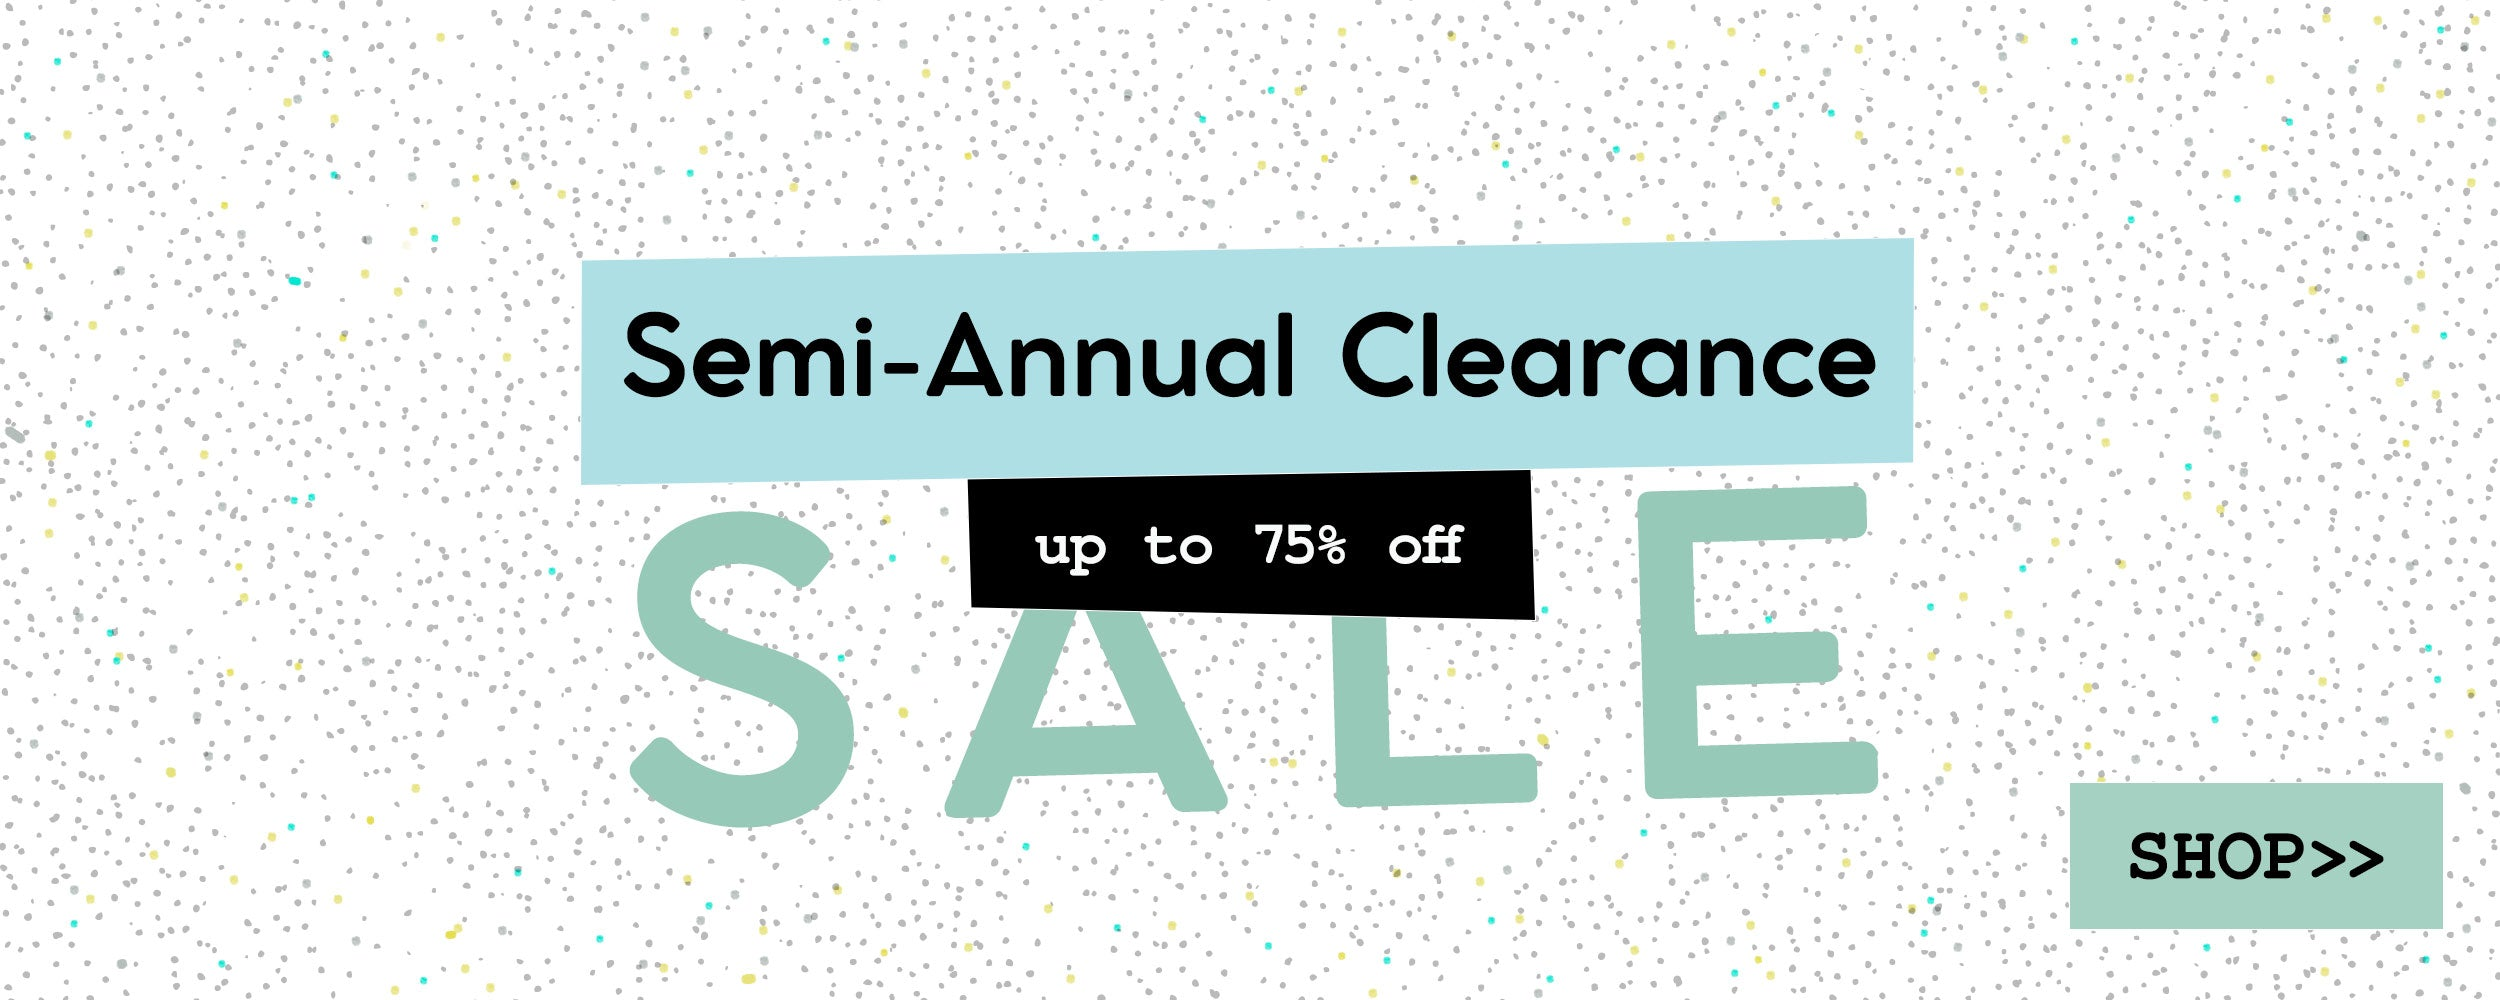 Semi-Annual Clearance Sale - up to 75% off